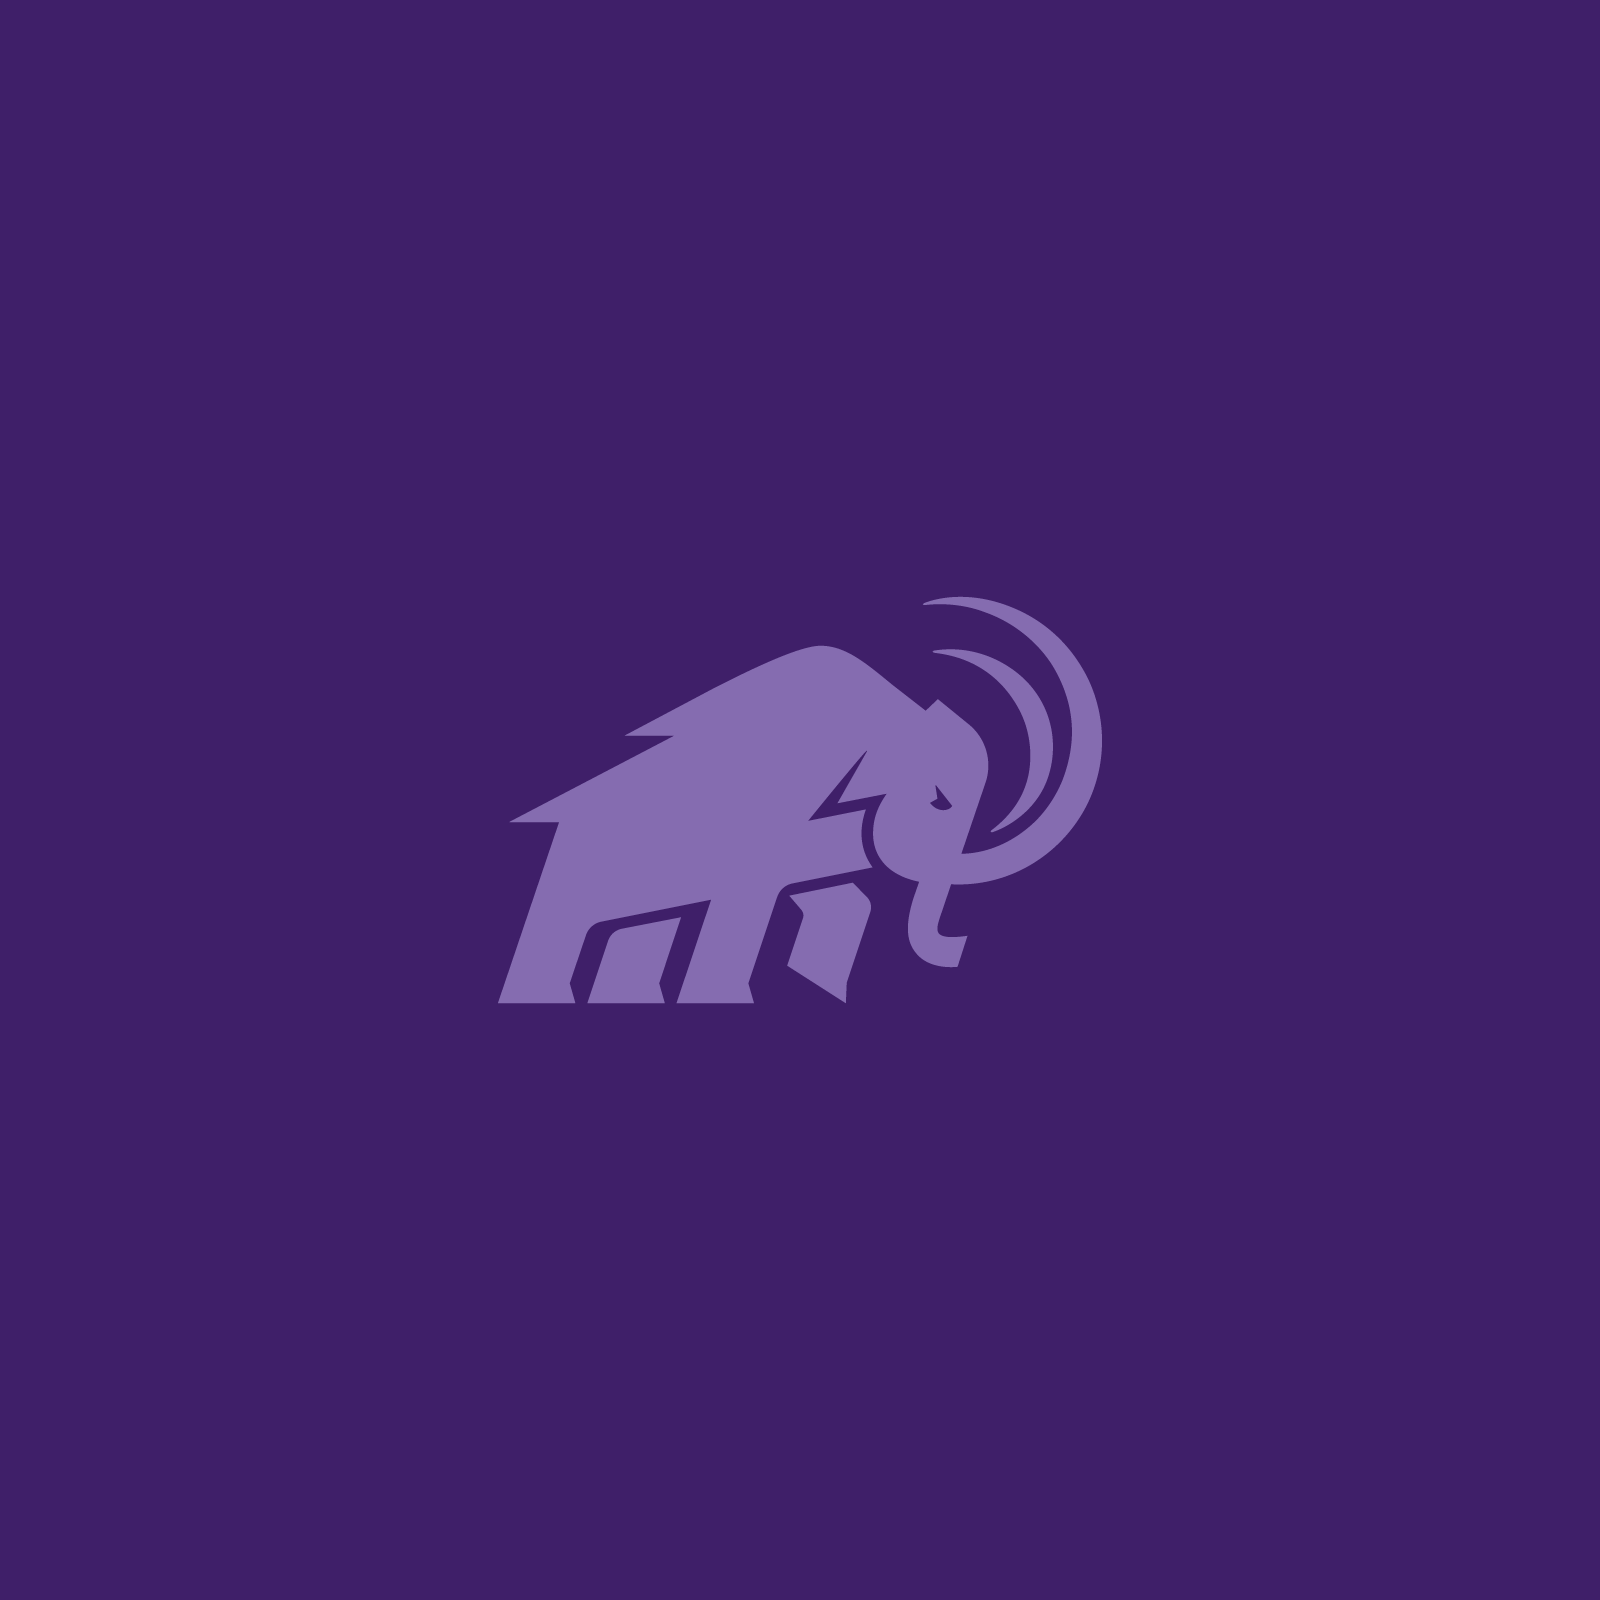 Amherst Mammoth in light purple on purple background